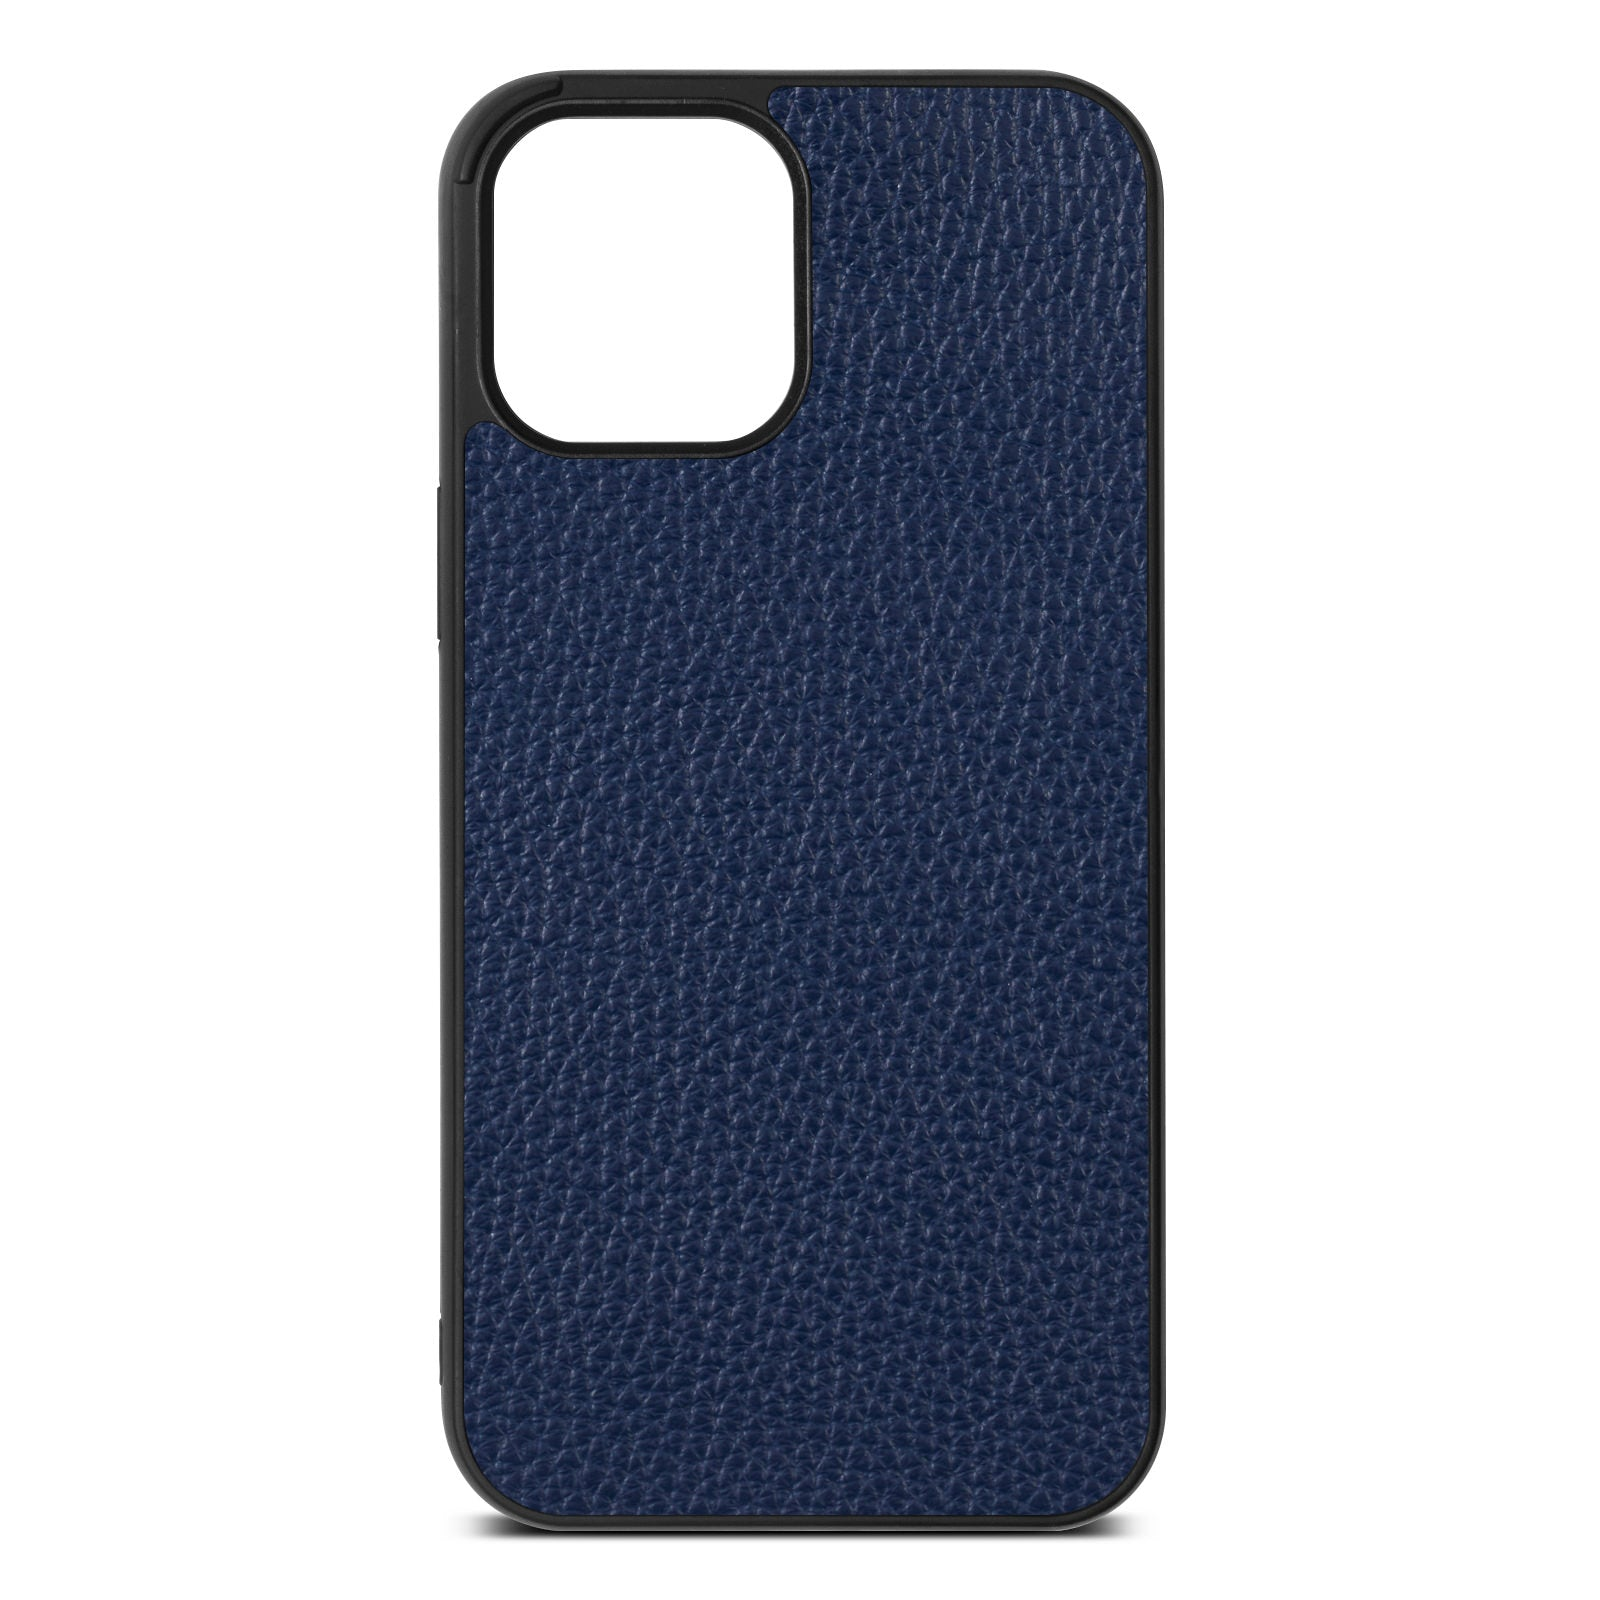 Blank iPhone 12 Pro Max Navy Blue Pebble Grain Leather Case